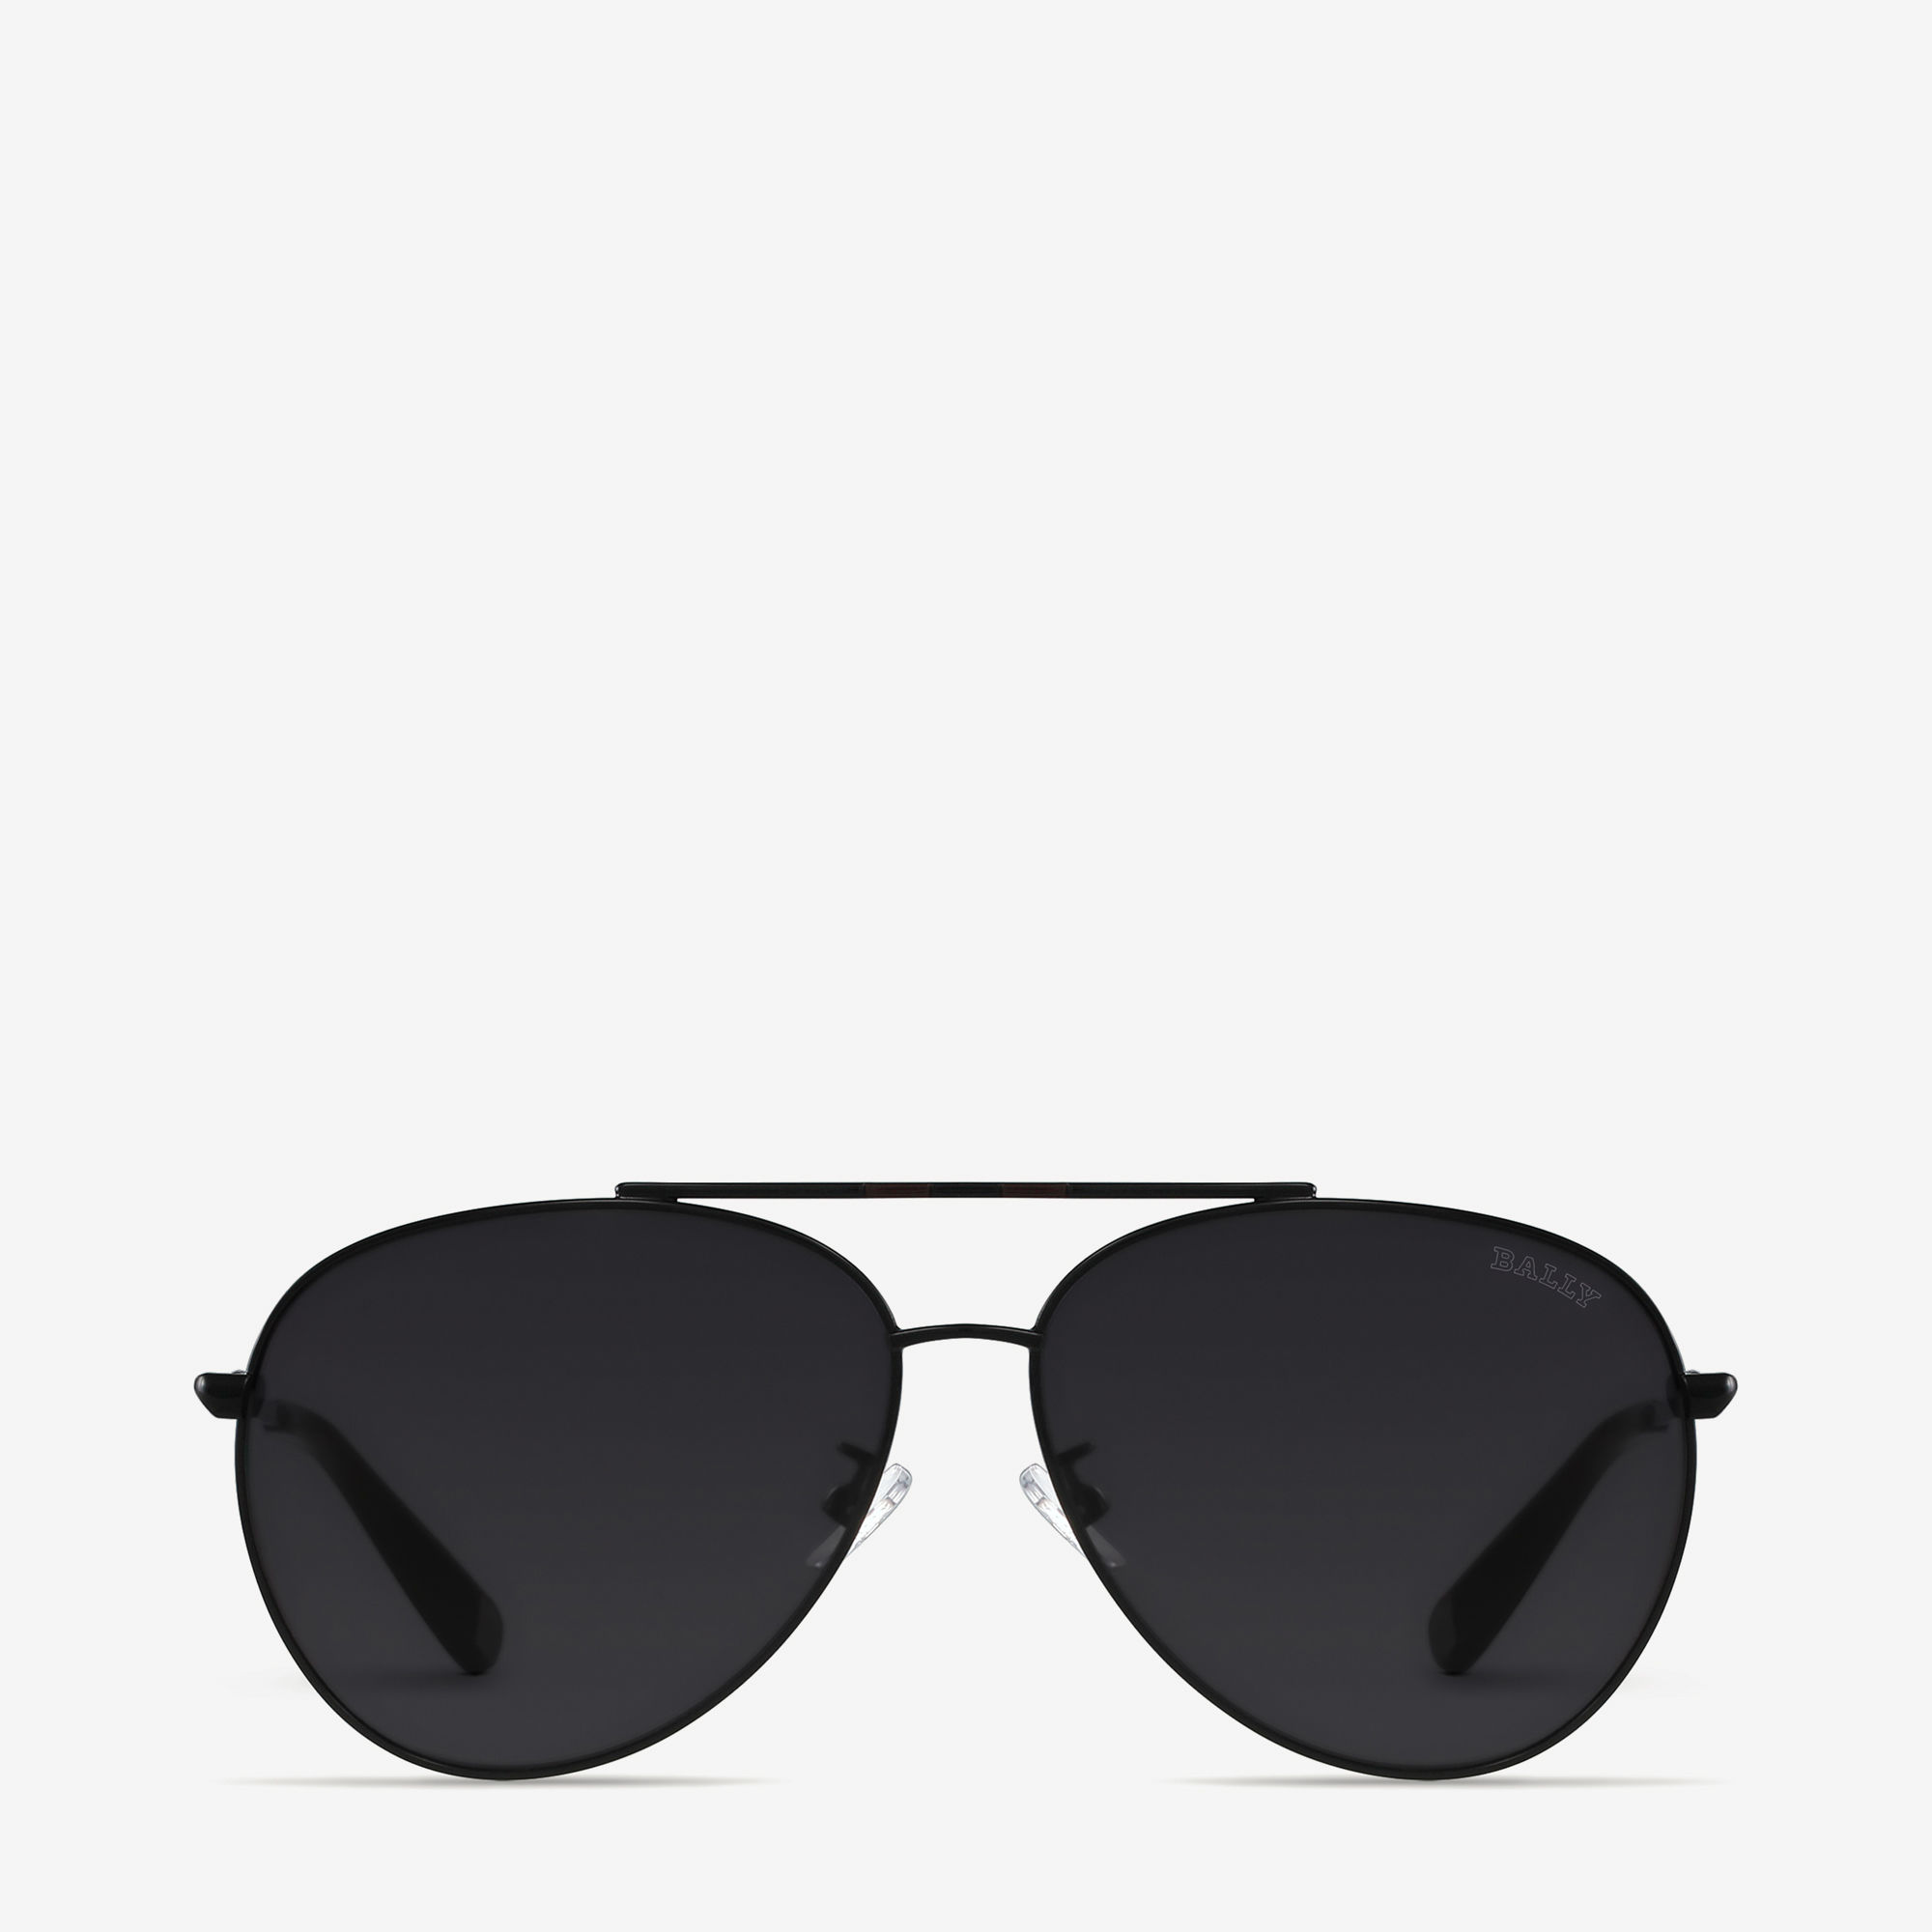 6cfbfbf27d Black And White Sunglasses | Free download best Black And White ...